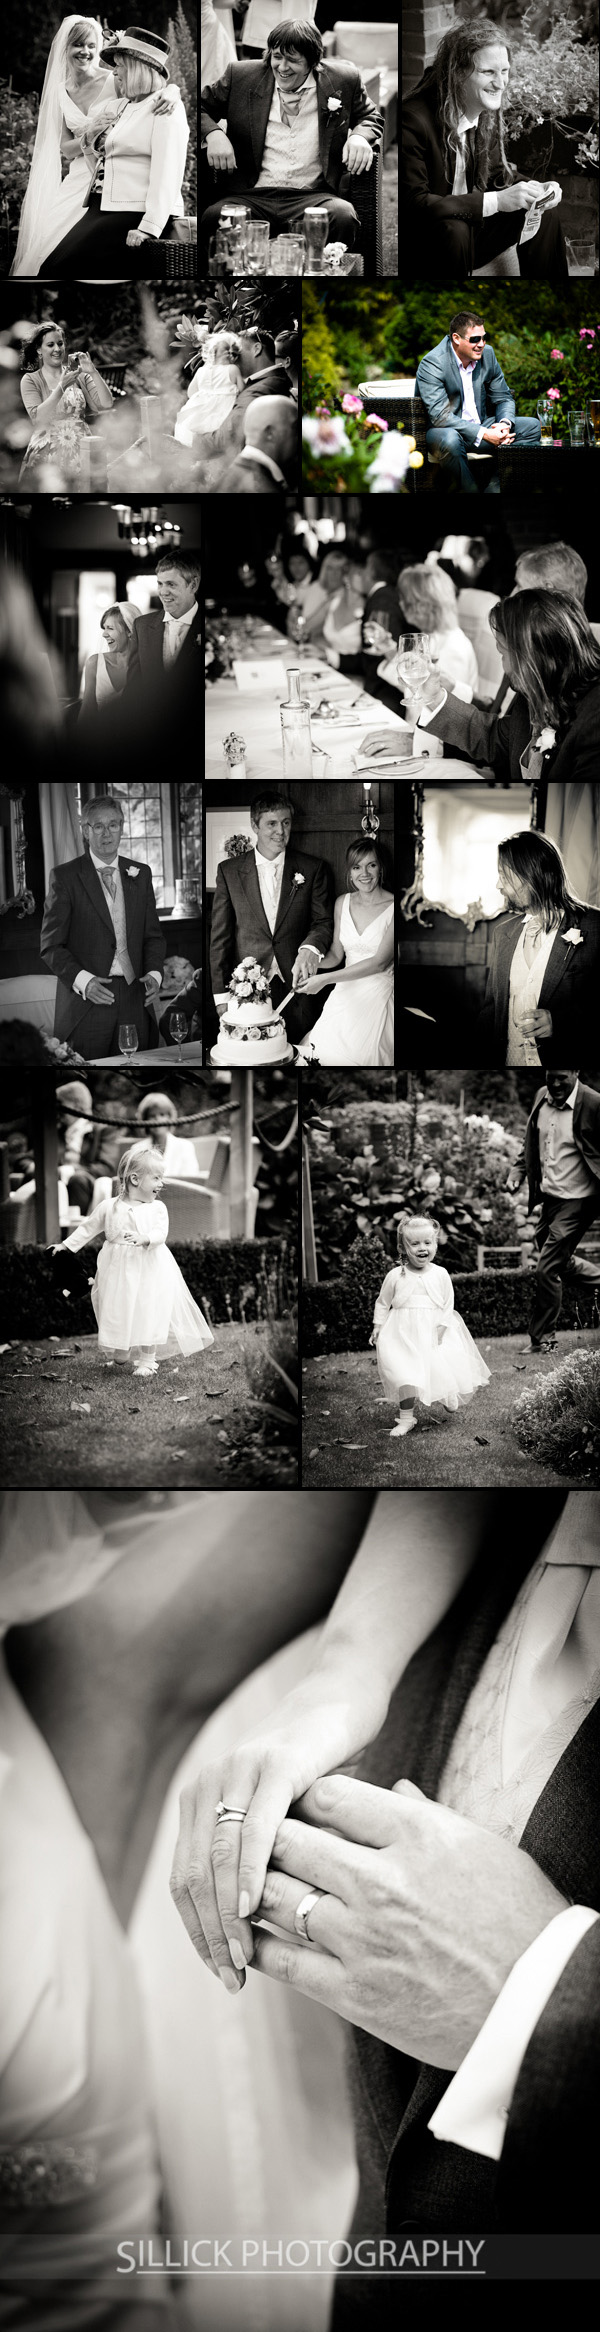 Sillick Photography - Hampshire & Dorset weddings